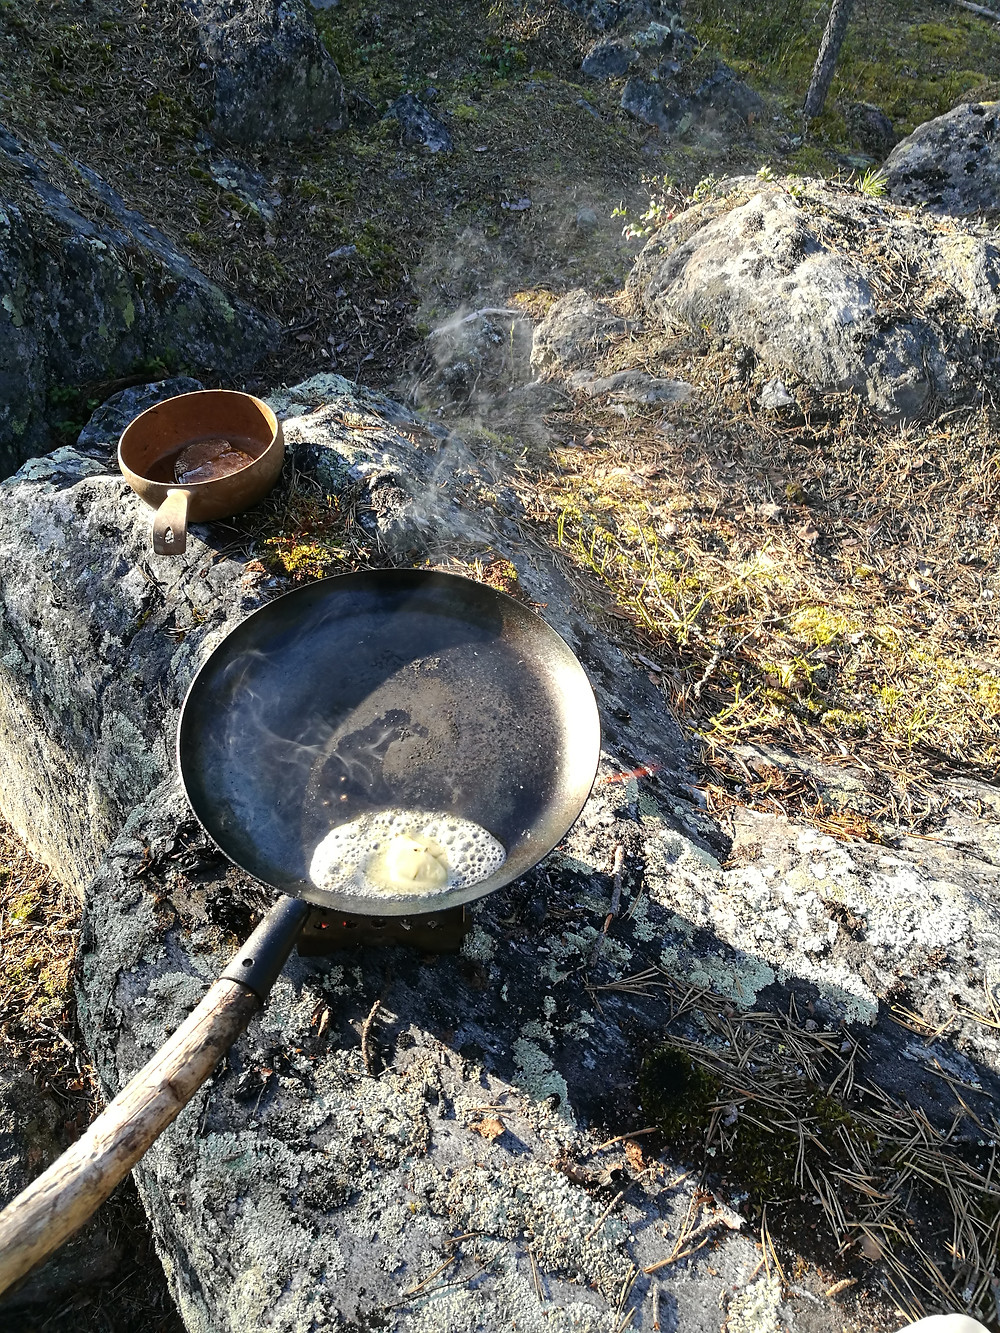 Melting butter in a pan - Feast in the Wild